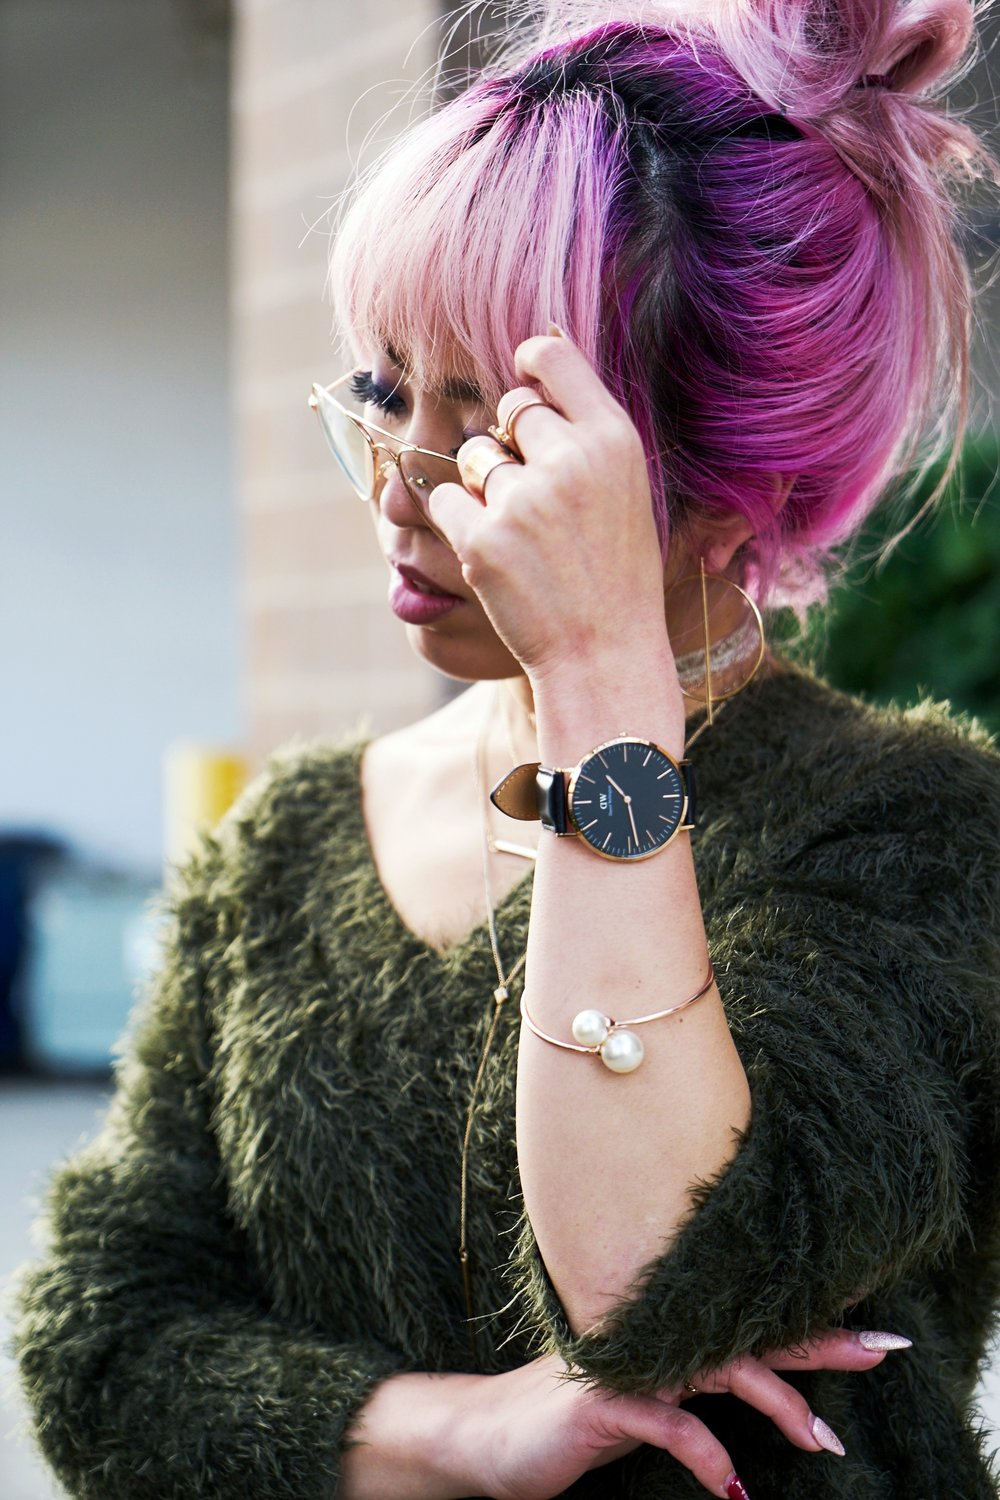 H&M olive chunky sweater-H&M cropped trousers-ASOS python lace-up pumps-ZARA navy velvet bag-mango earrings-Daniel Wellington Watch-Clear Lens aviator-Aika's Love Closet-Seattle Style blogger-japanese-pink hair-colored hair 8